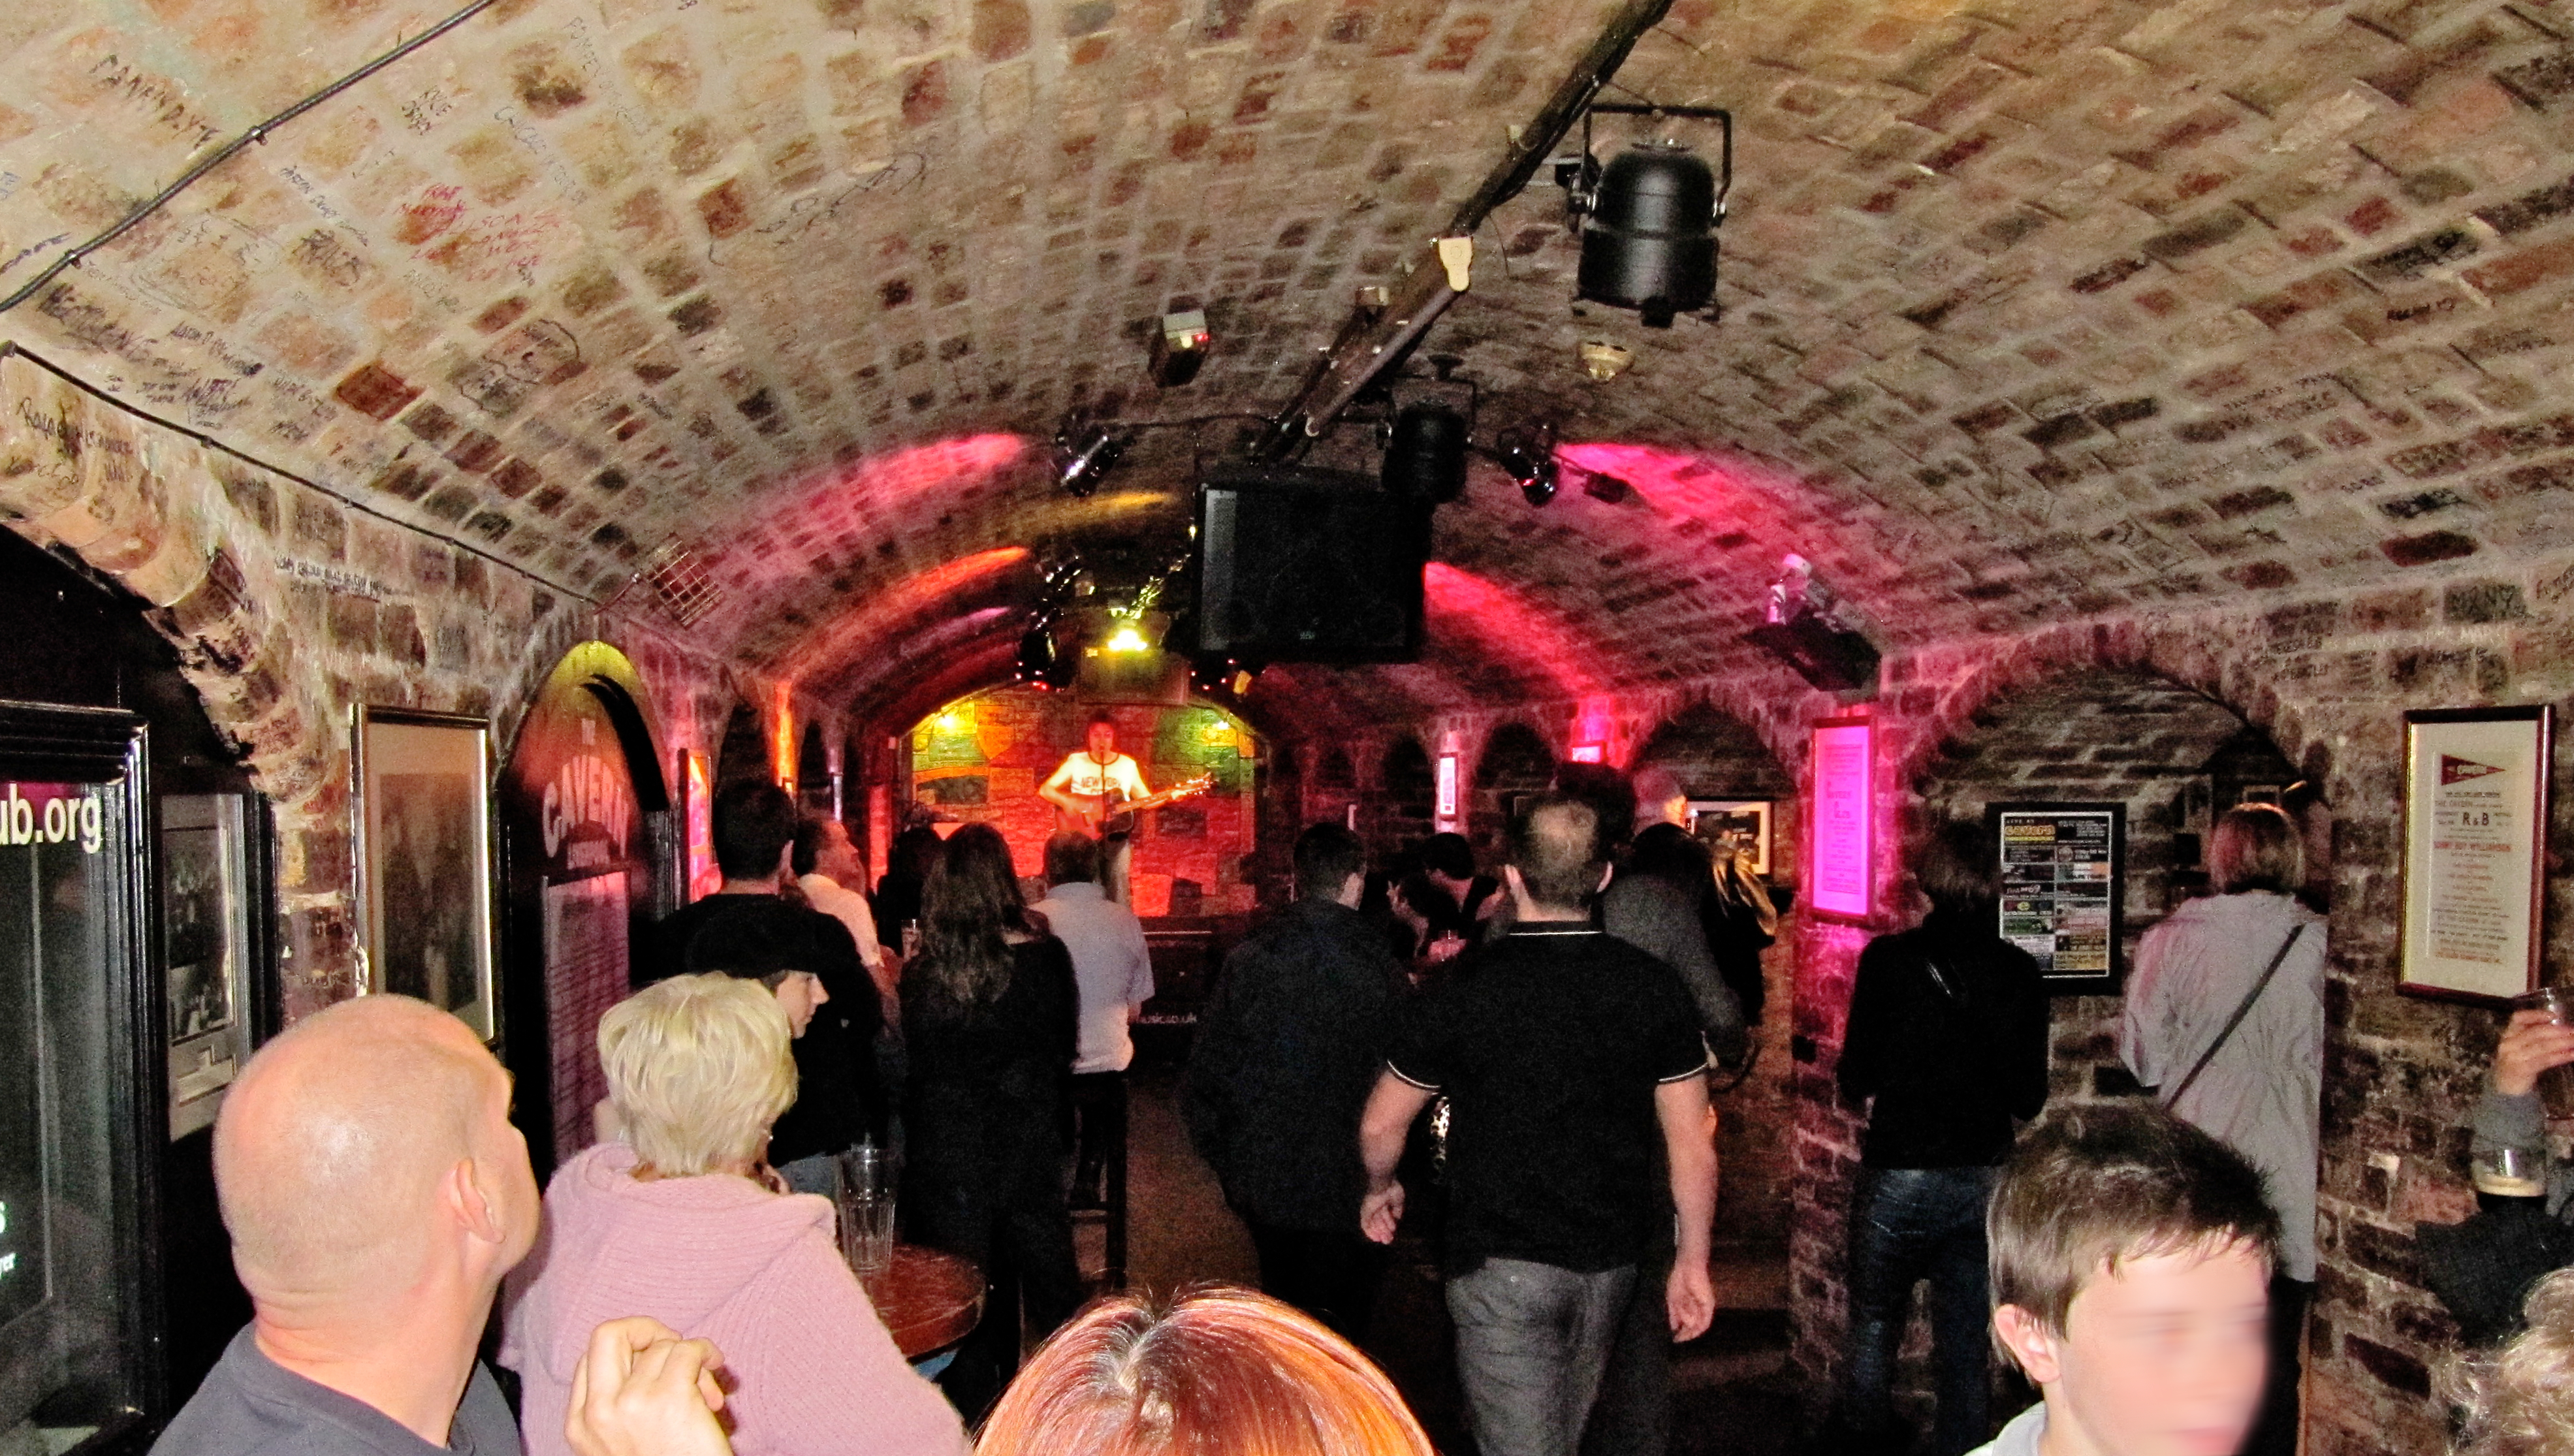 The_Cavern_of_the_Cavern_Club_(clip),_2009